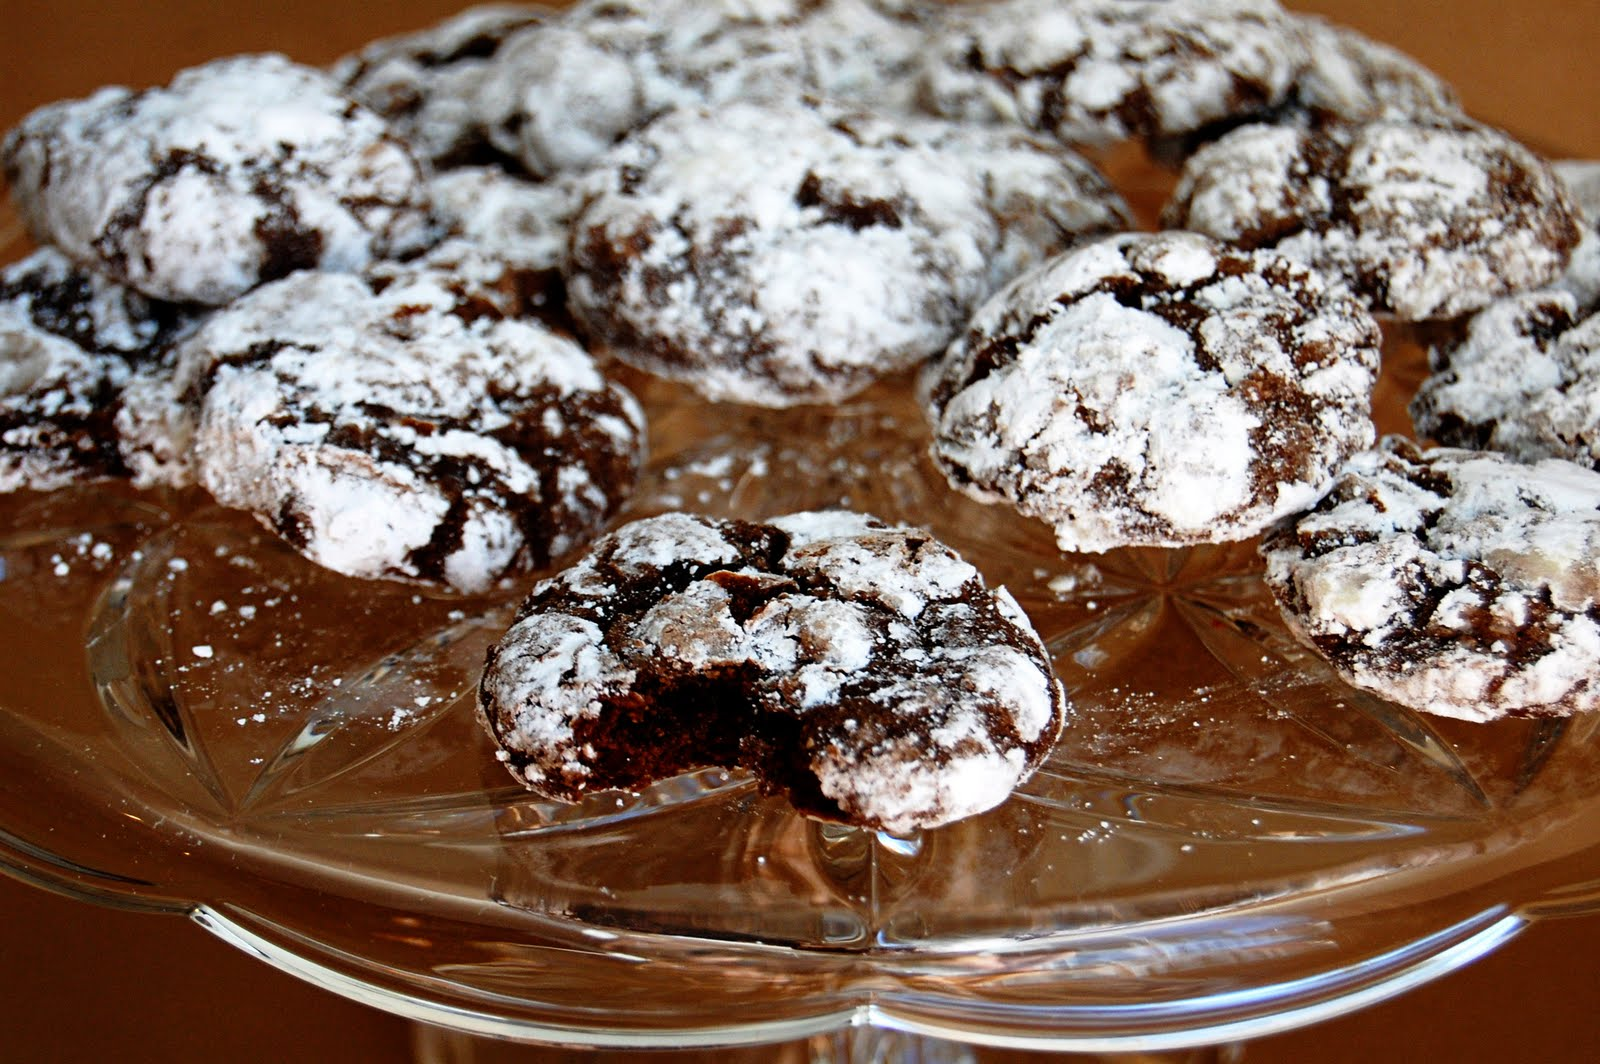 ... chocolate crinkle cookies chocolate crinkle cookies chocolate crinkle